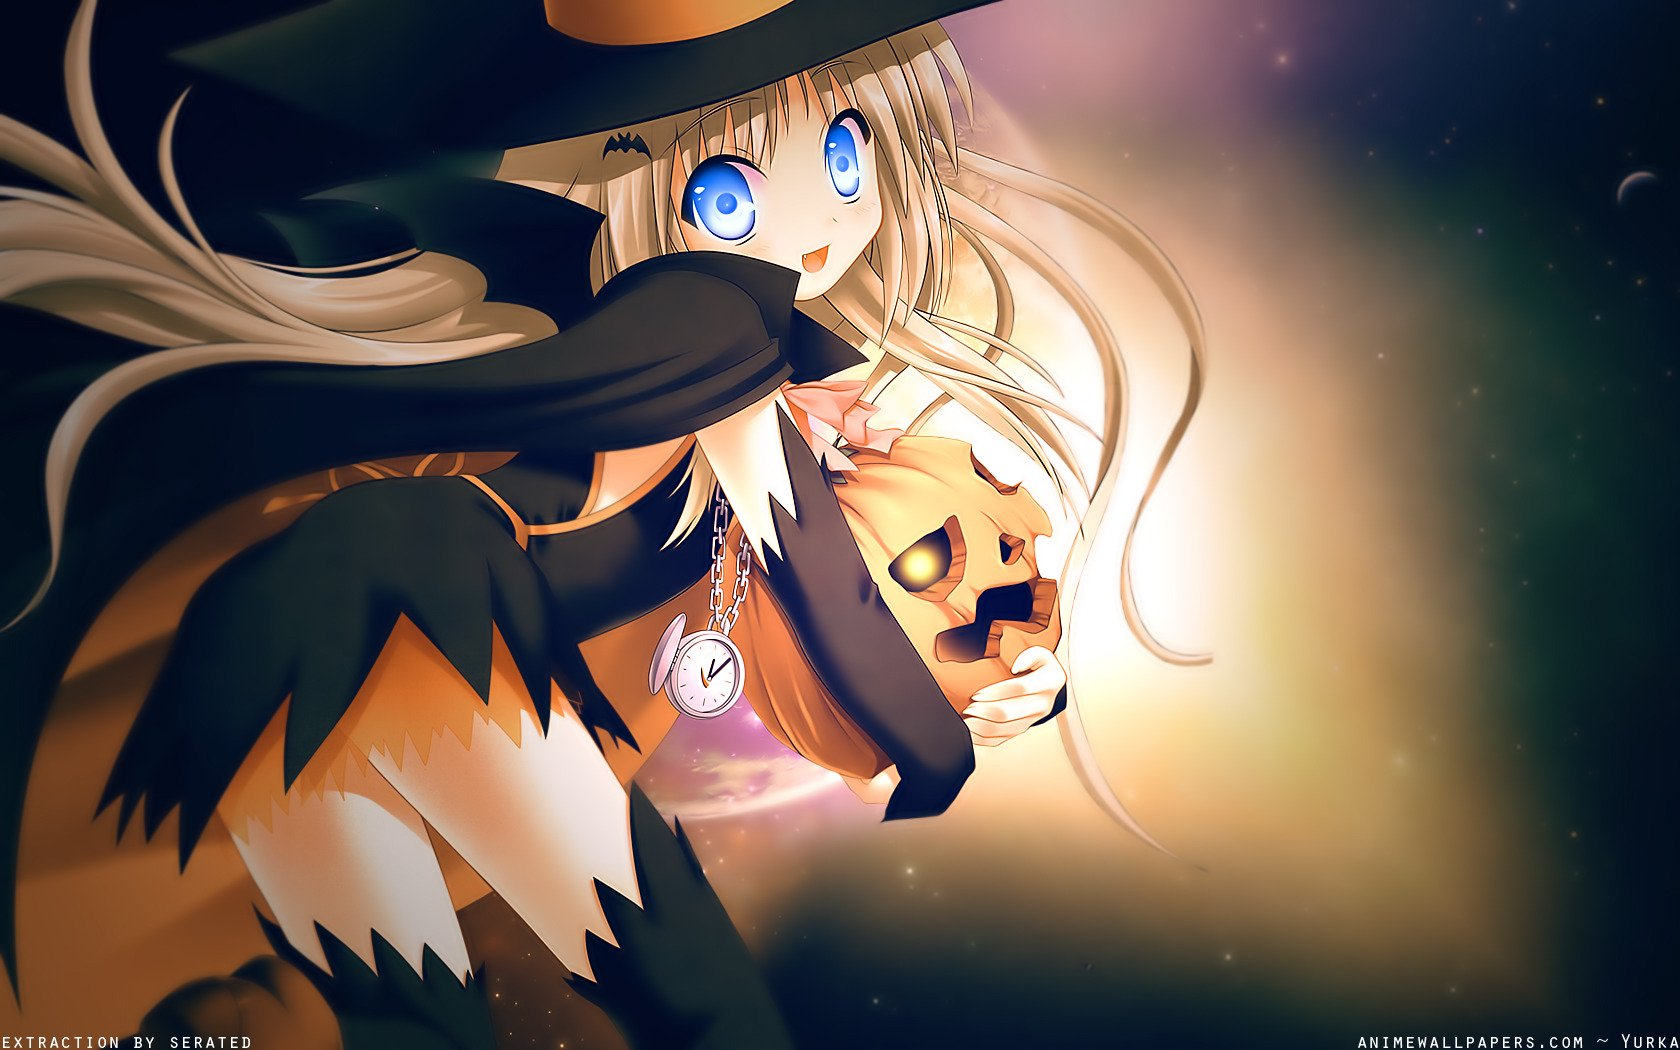 Usa Anime Girl Wallpaper 1920x1080 Descarga Fondos De Pantallas Anime Especial Halloween